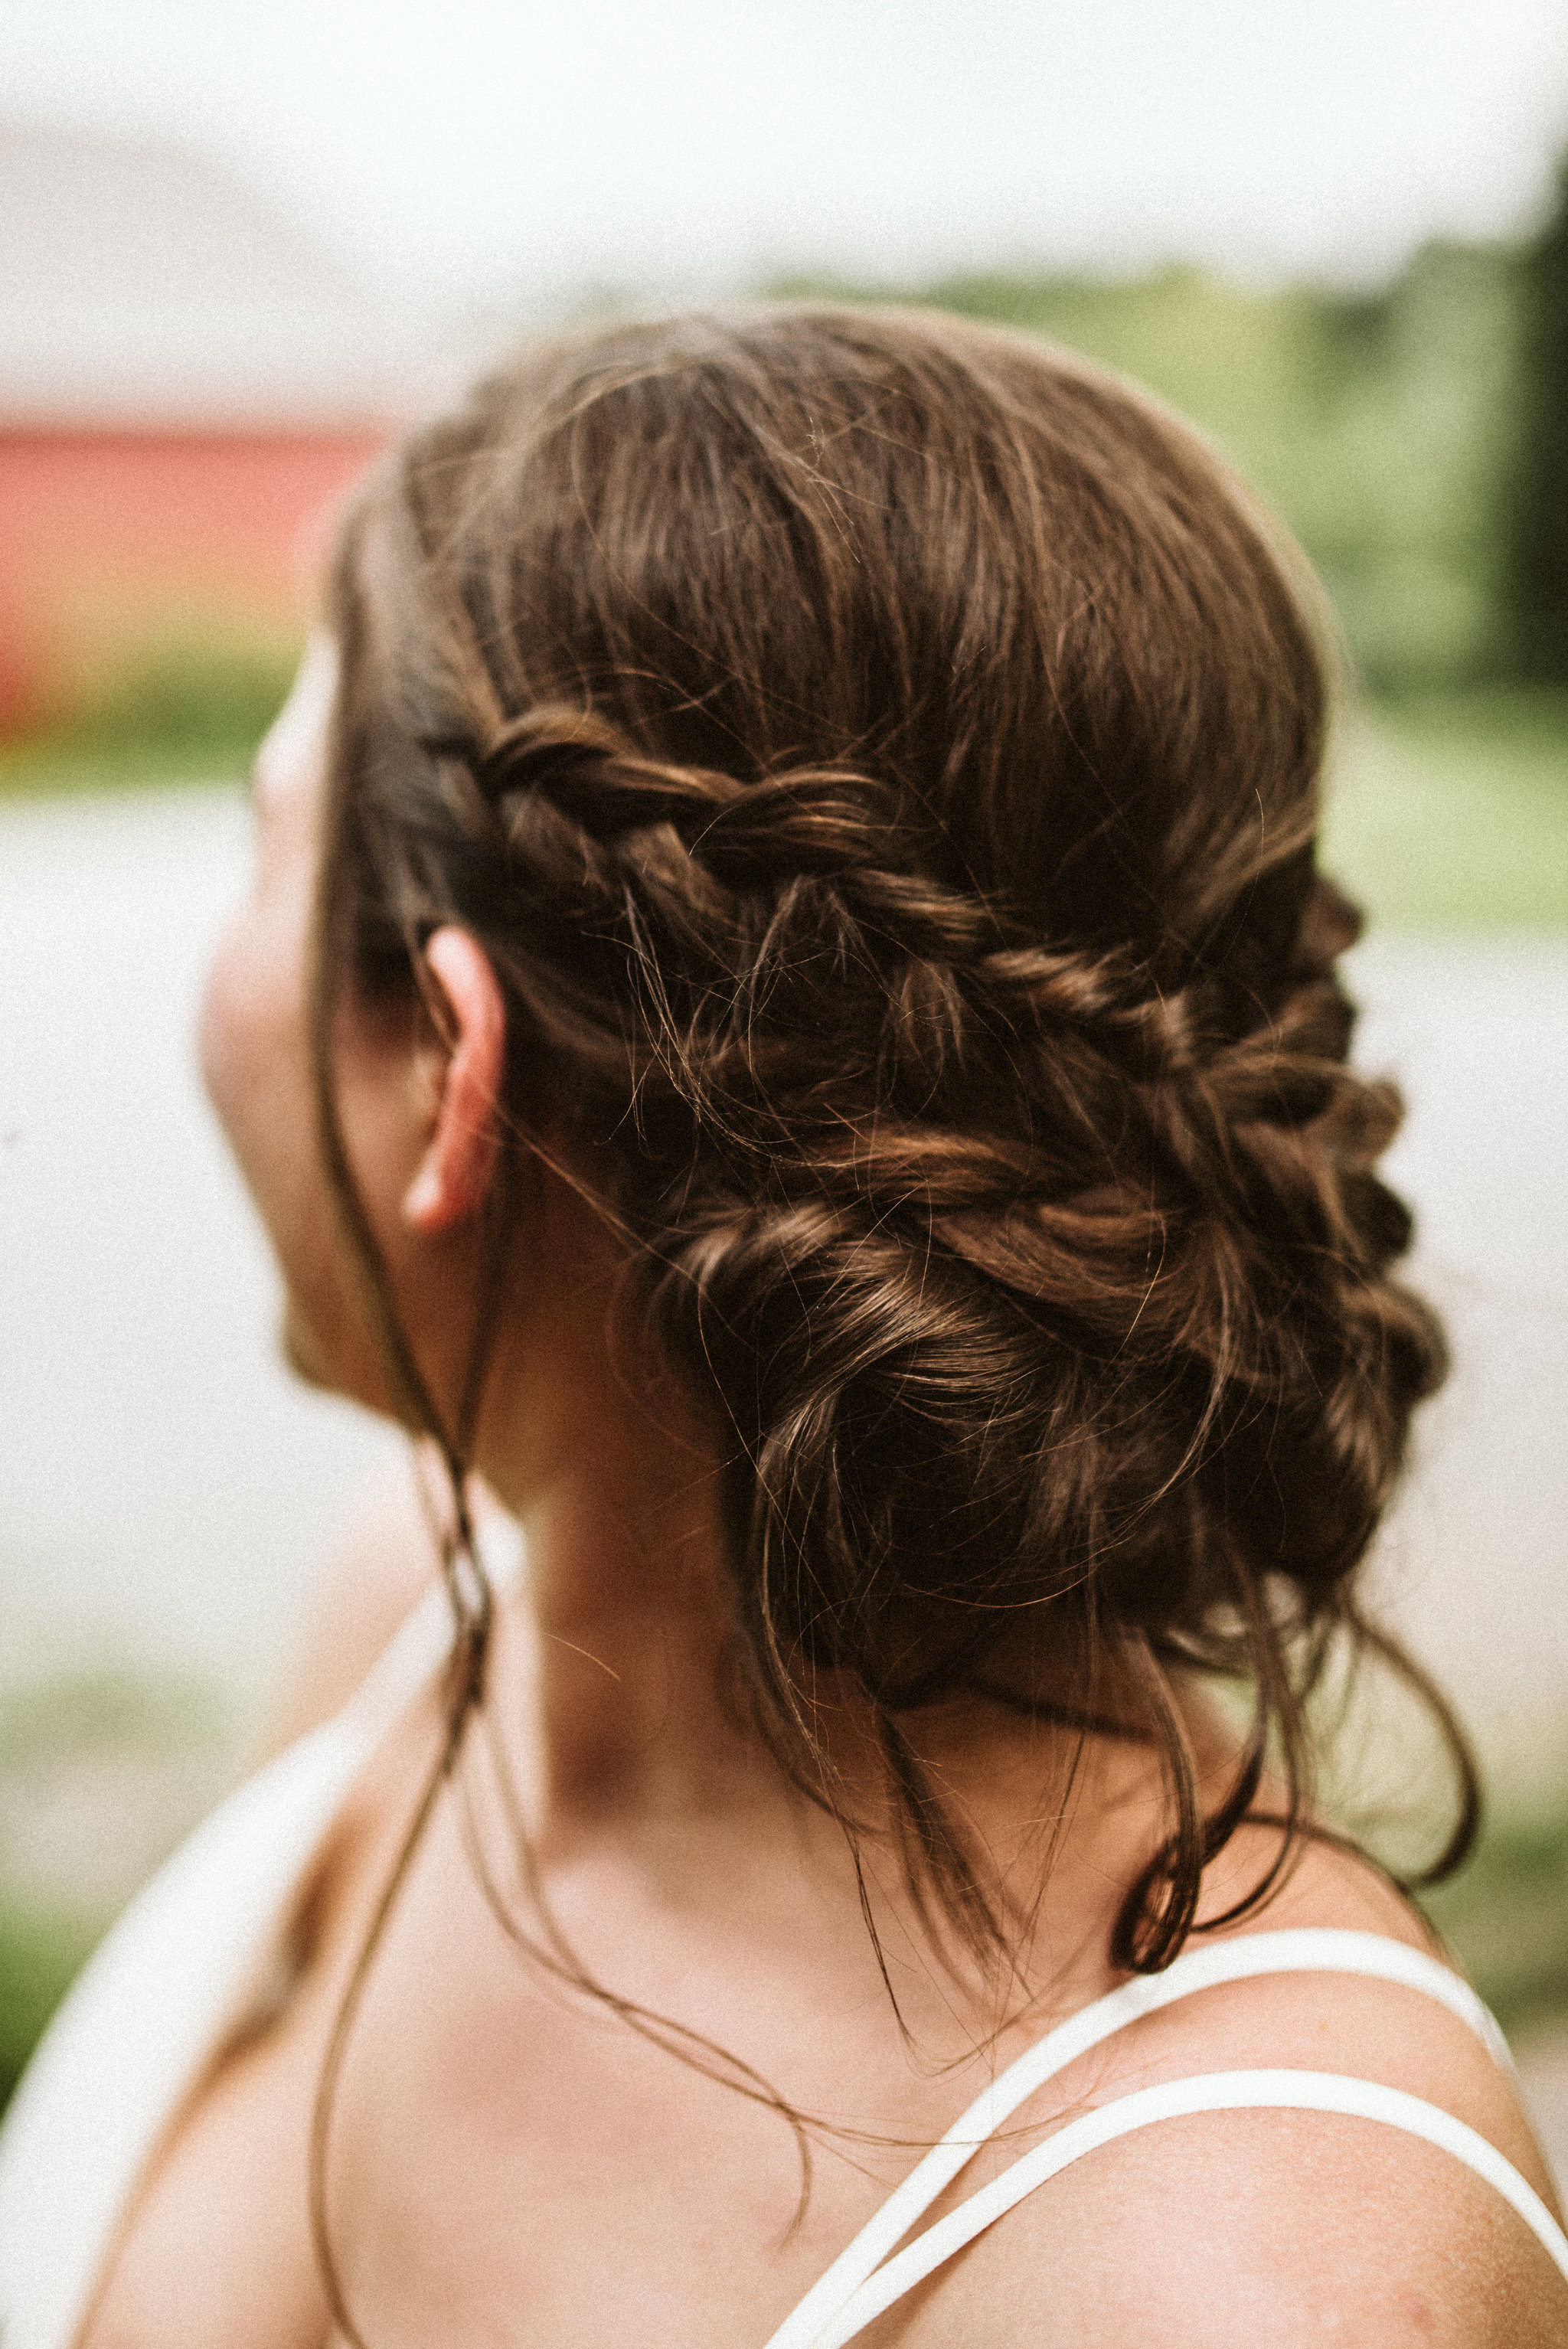 Rocklands Farm, Maryland, Intimate Wedding, Baltimore Wedding Photographer, Sungold Flower Co, Rustic, Romantic, Barn Wedding, Detail Photo of Bridal Hair, Braids